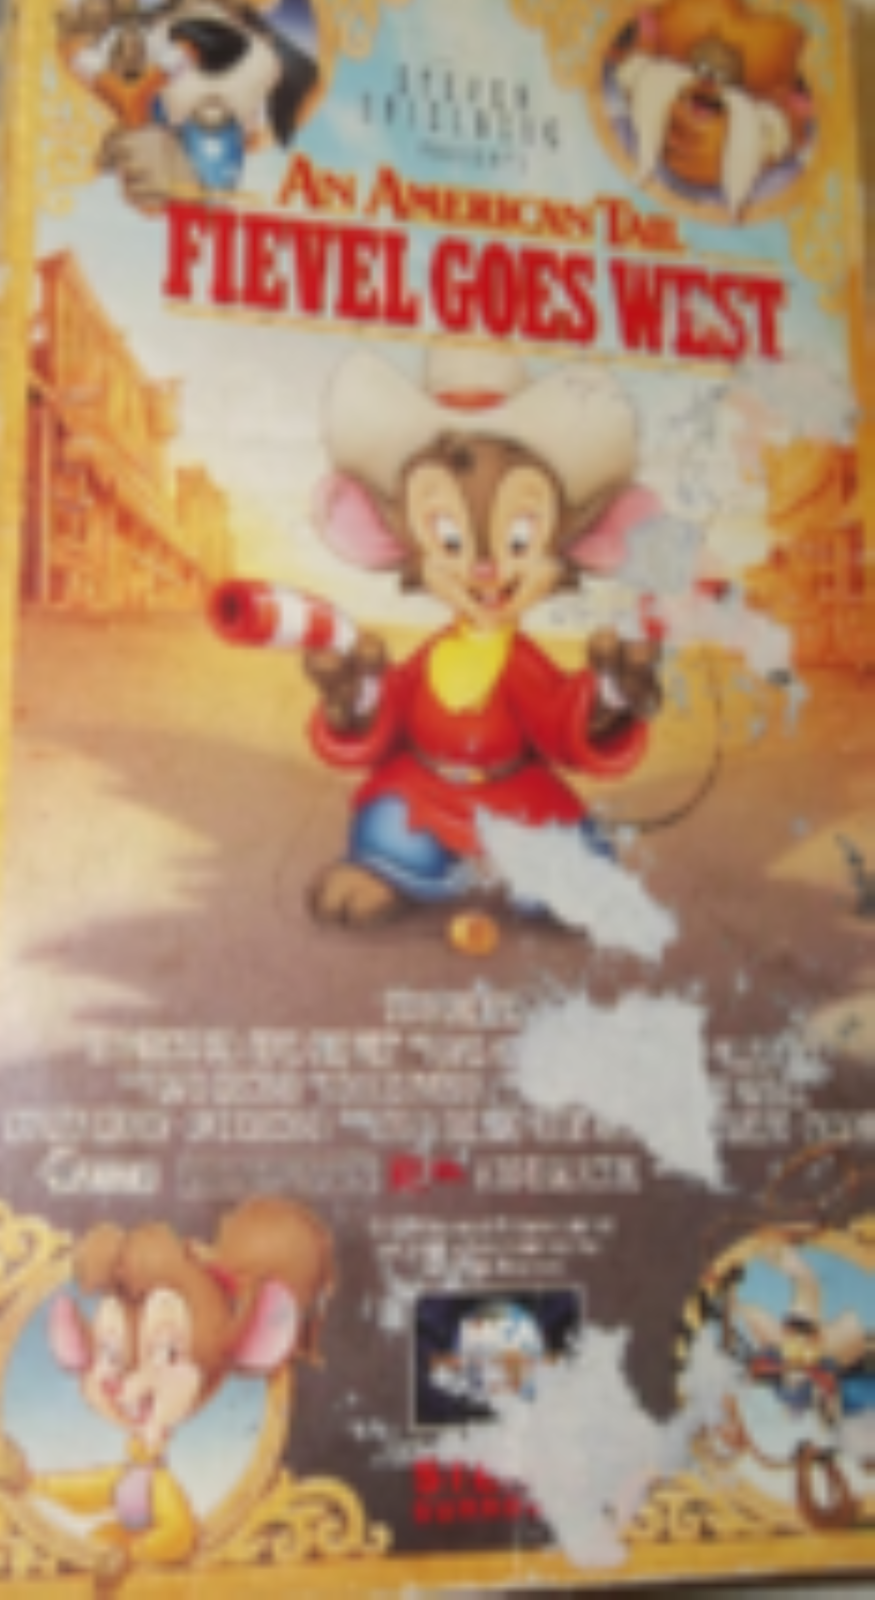 American Tail:Fievel Goes West Vhs